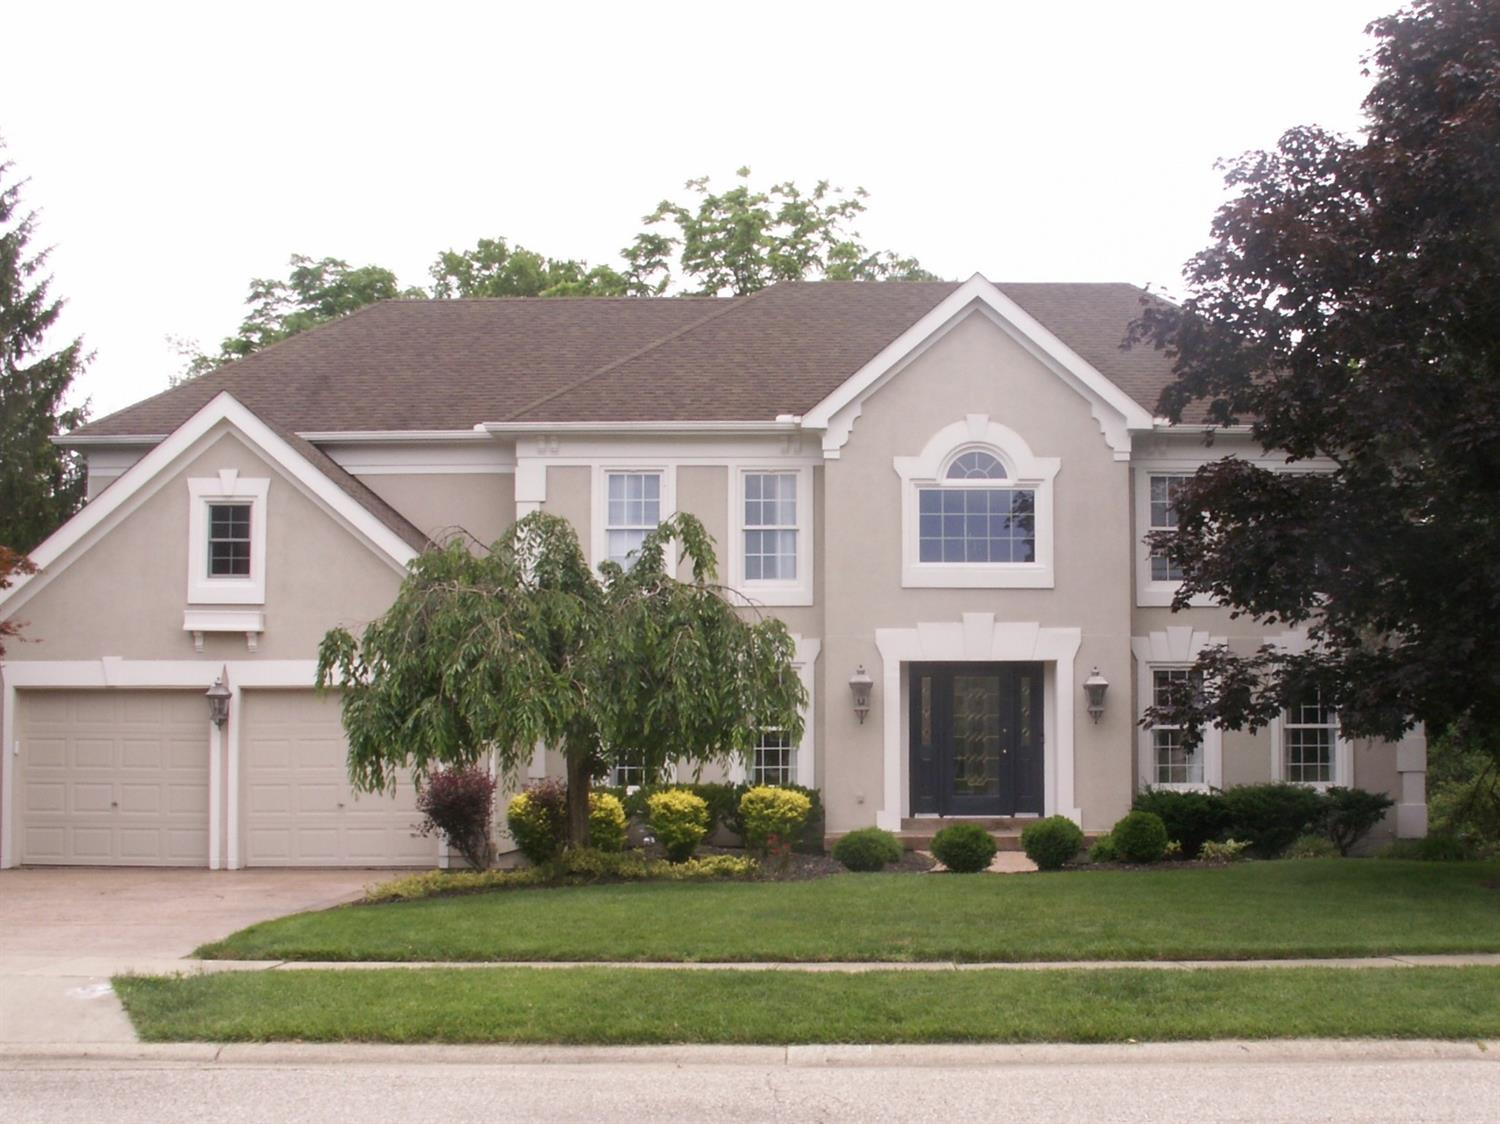 Property for sale at 3890 Brigadoon Drive, Union Twp,  Ohio 45255